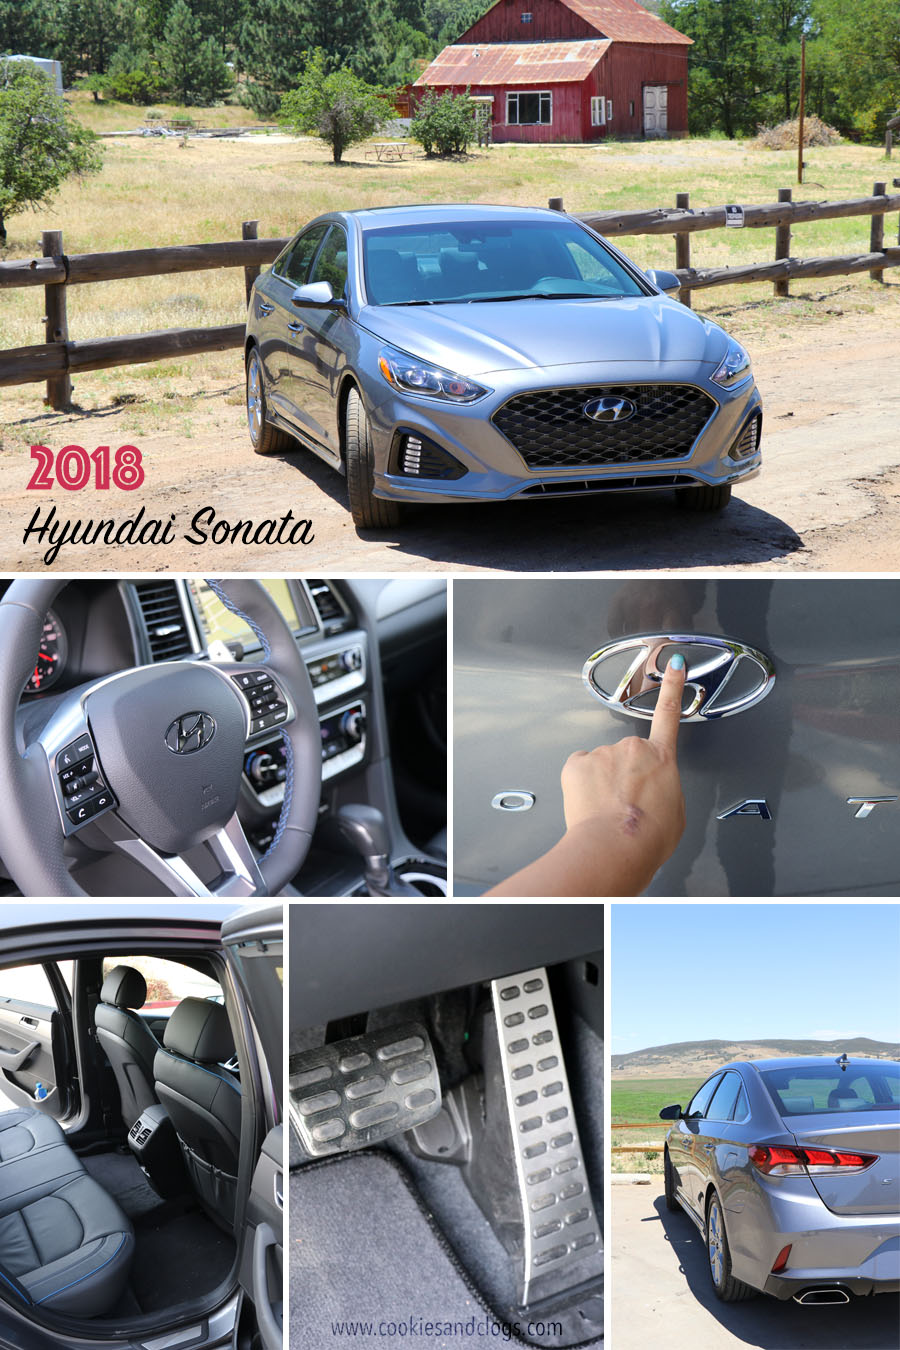 Cookies & Clogs | Giving back to the La Jolla, CA and San Diego, CA community + 2018Hyundai Sonata review.